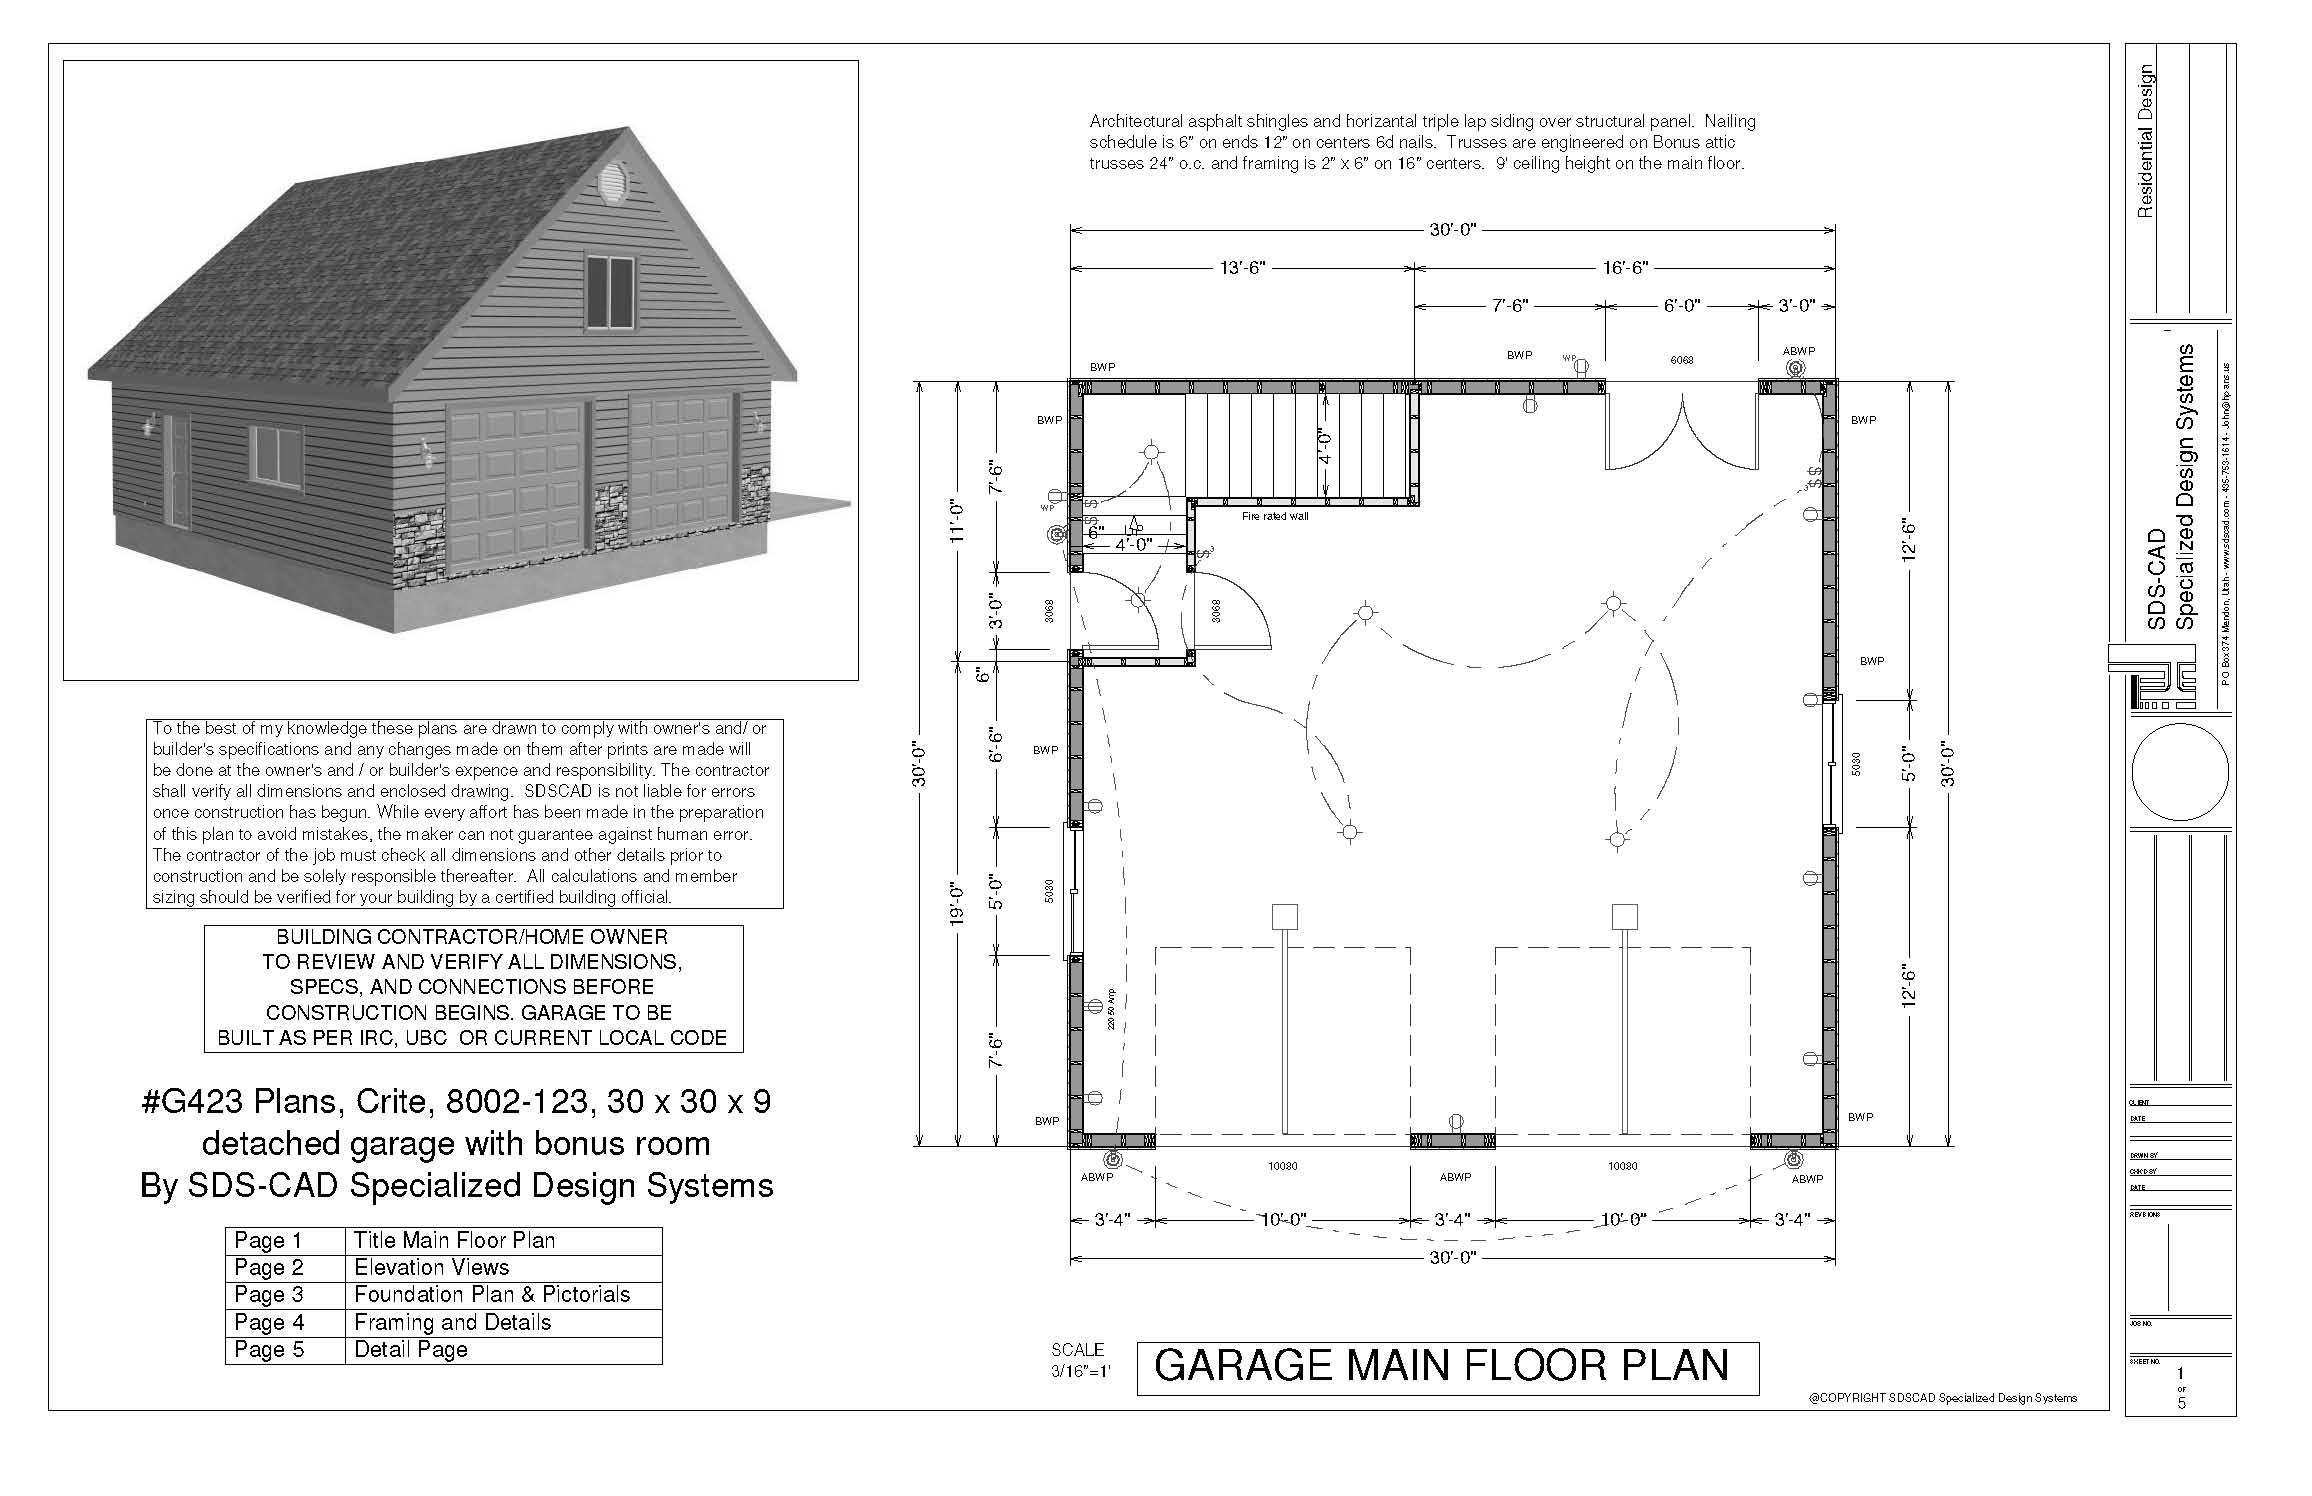 G423a garage plans 30 x 30 x 9 pdf and dwg files garage for Pole barn plans pdf